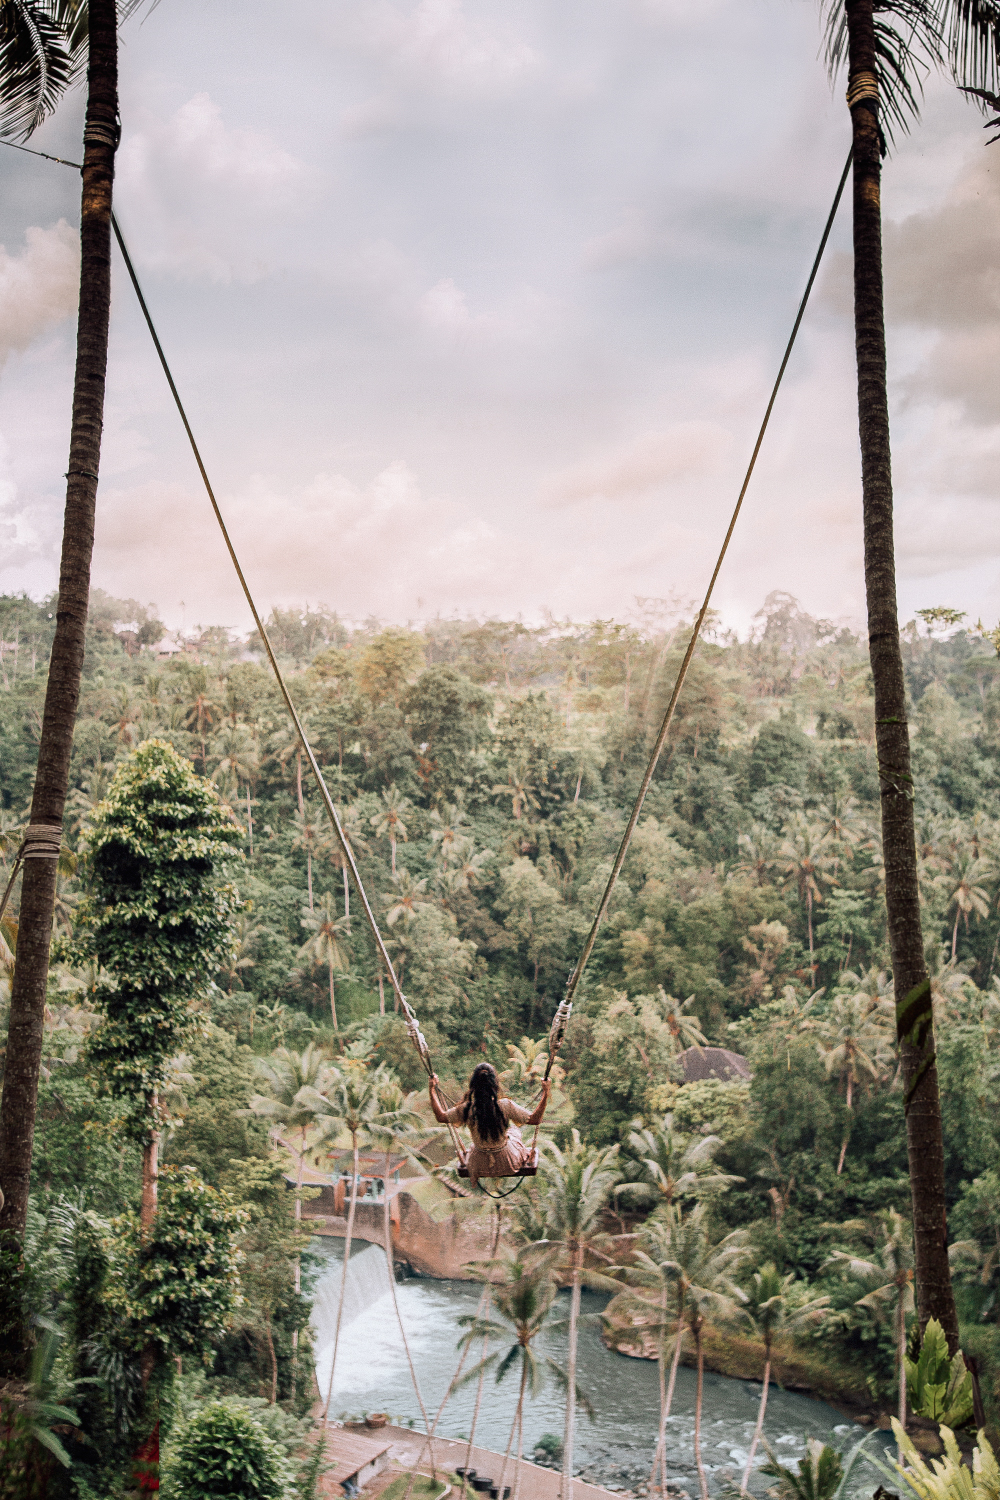 Bali Travel Guide — Sunday Chapter